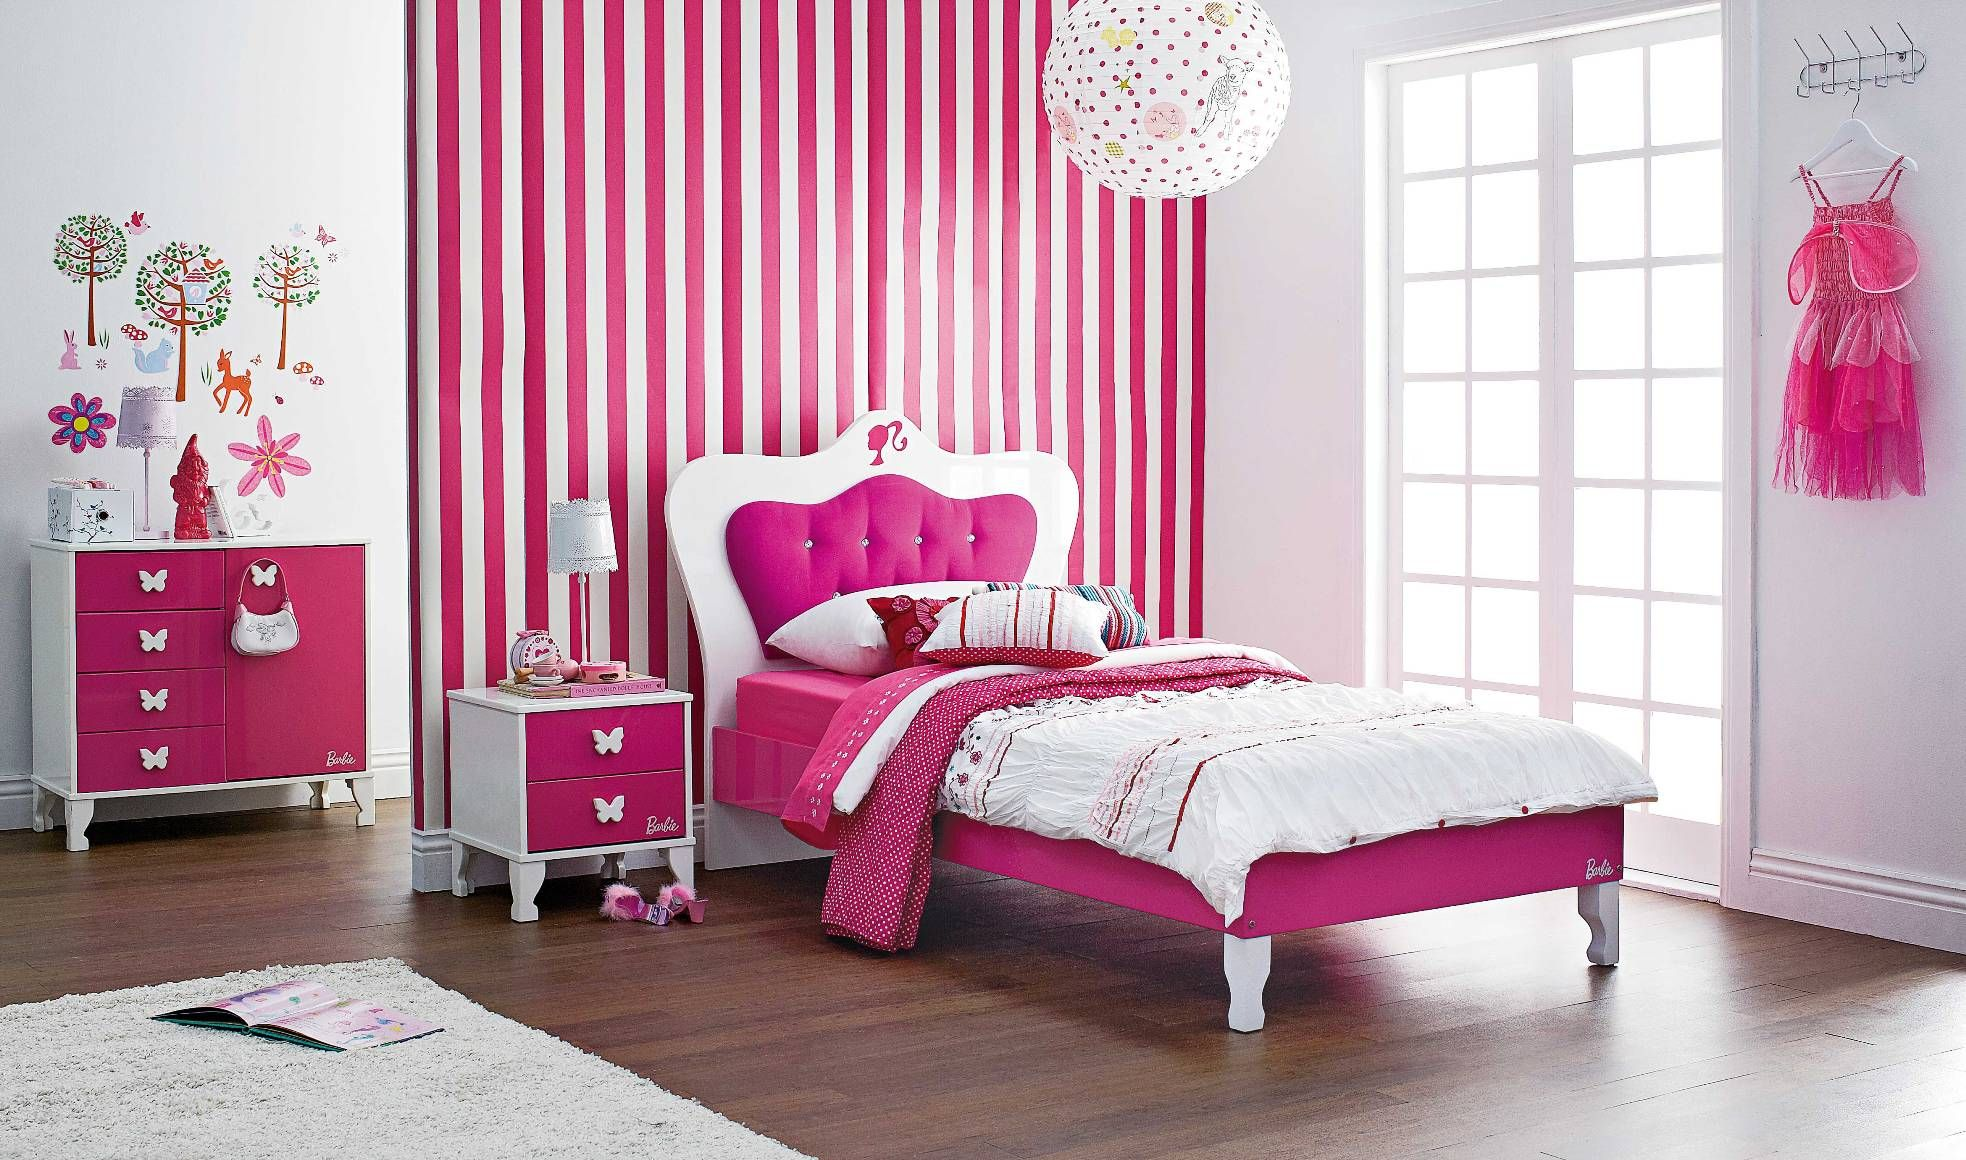 Barbie Bedroom Furniture By Nero Furniture From Harvey Norman New Zealand